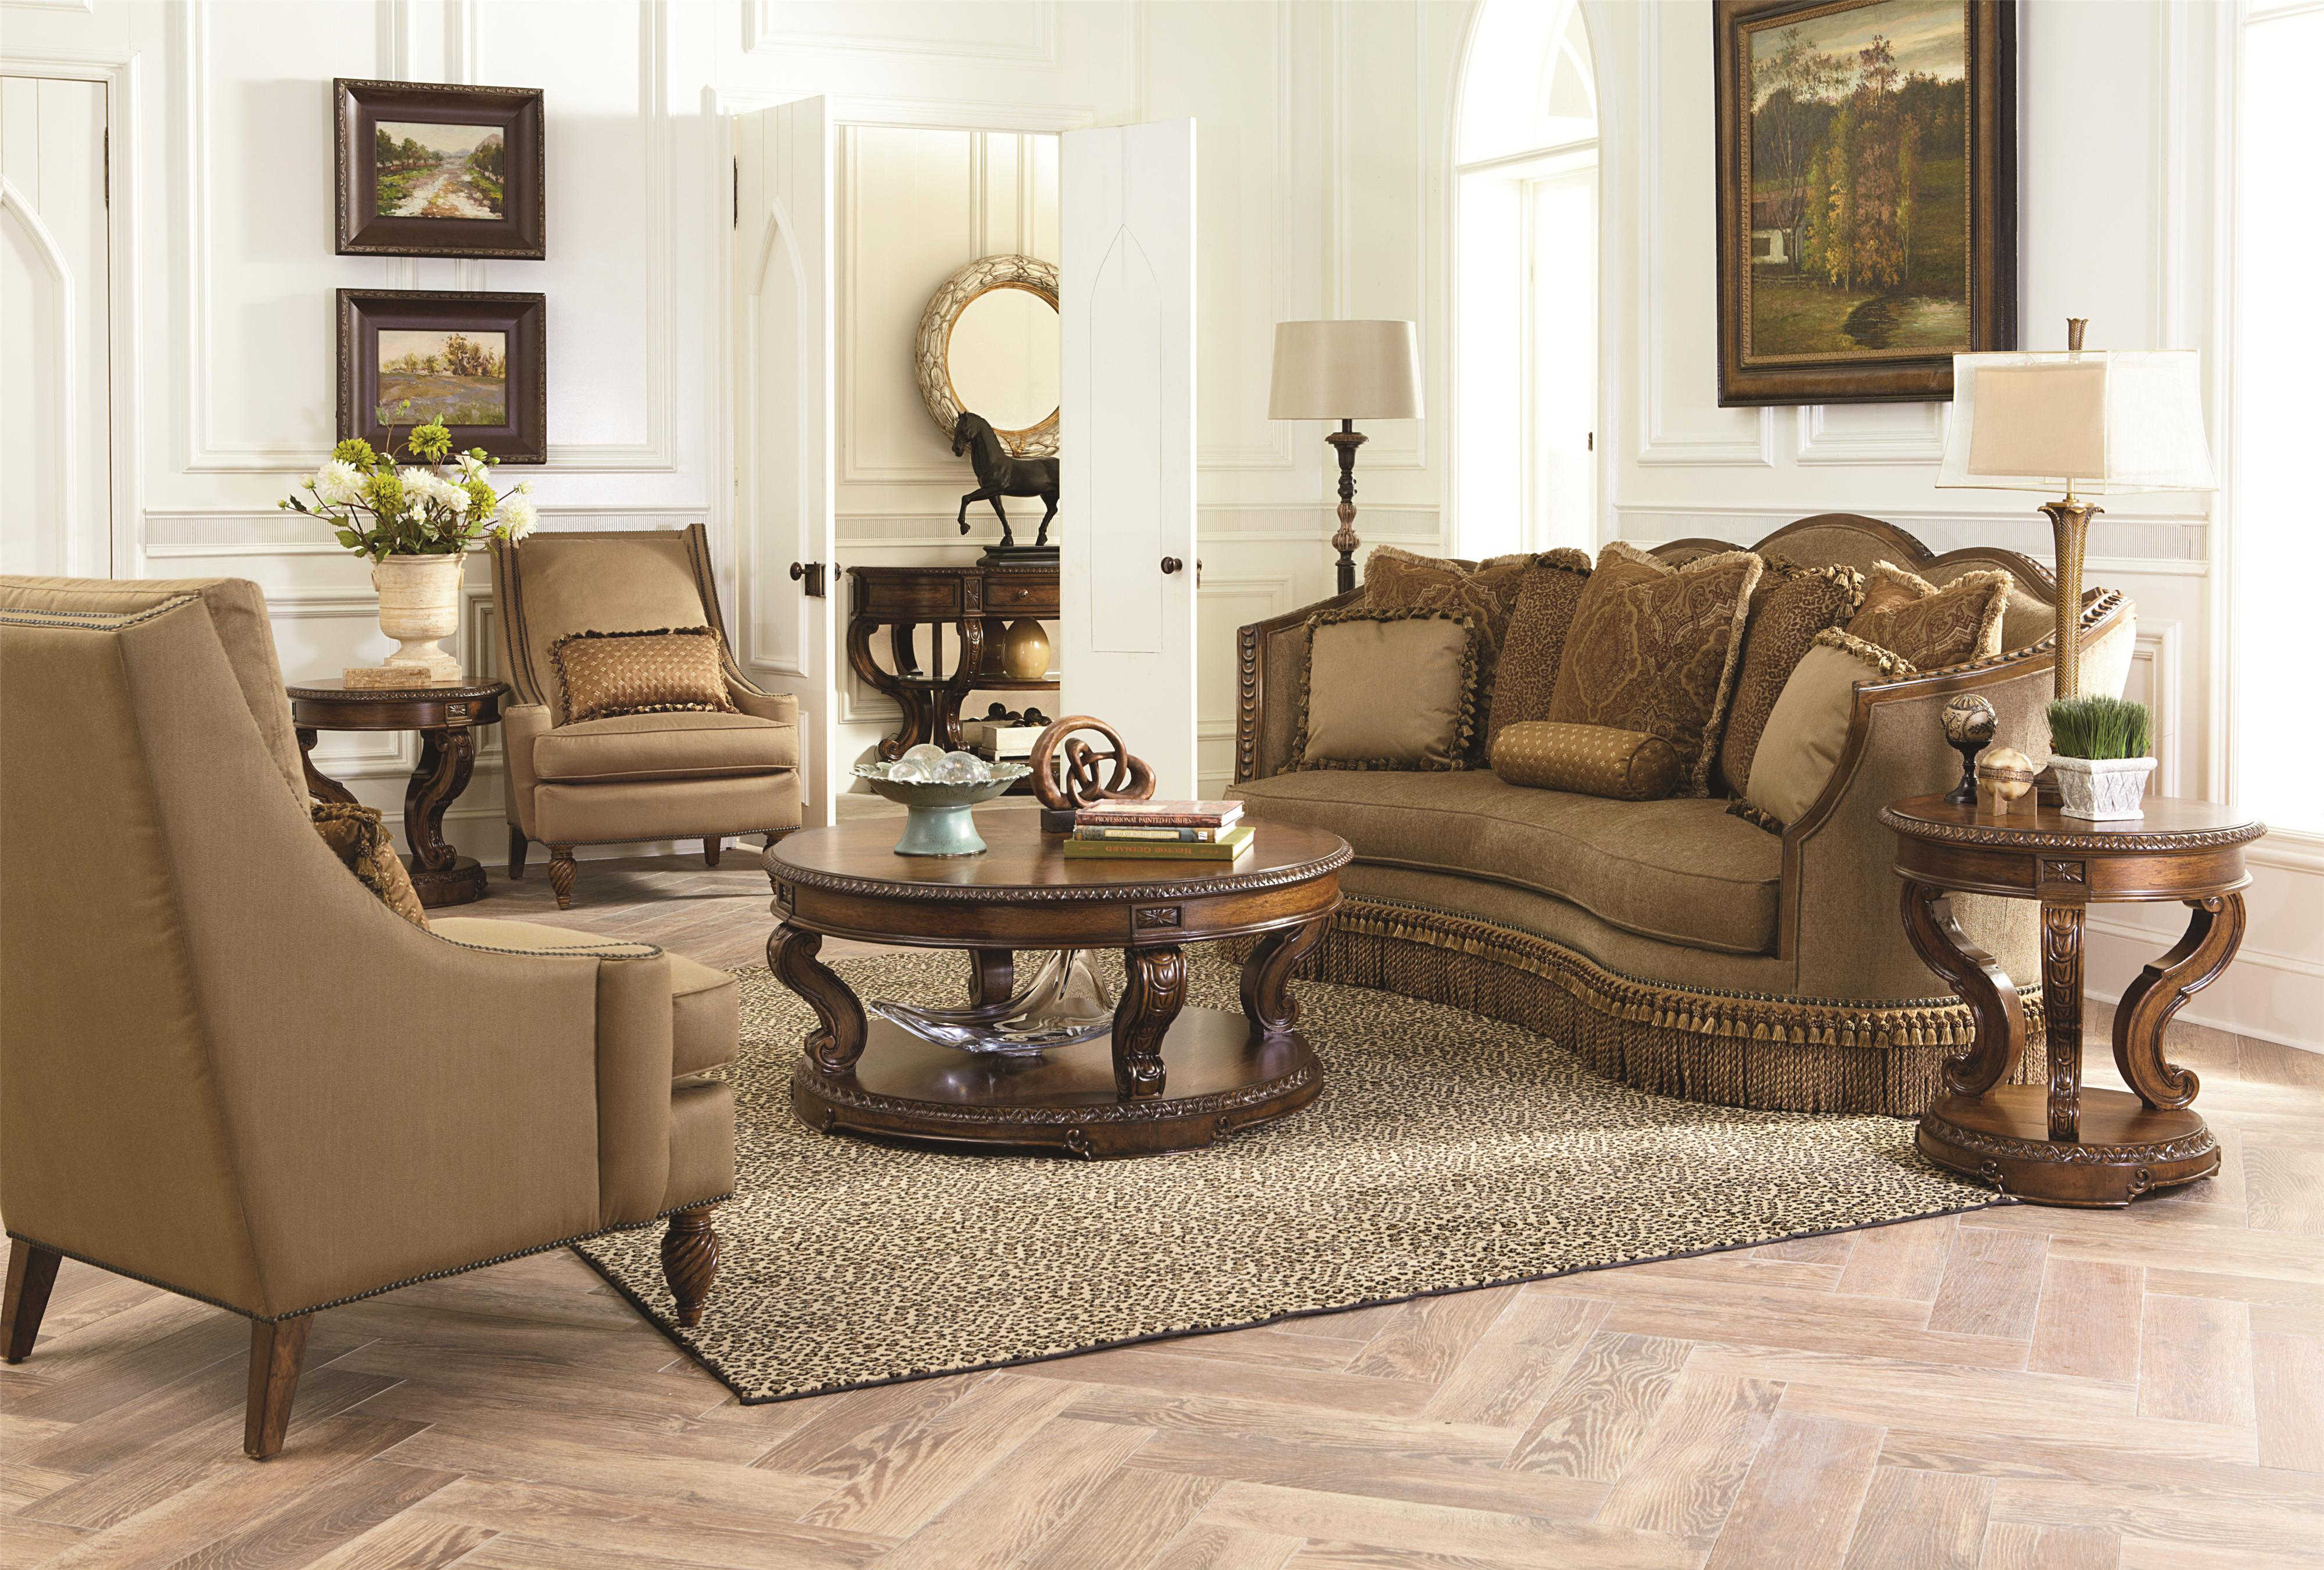 Legacy Classic Pemberleigh Stationary Living Room Group - Item Number: 3100 Living Room Group 1